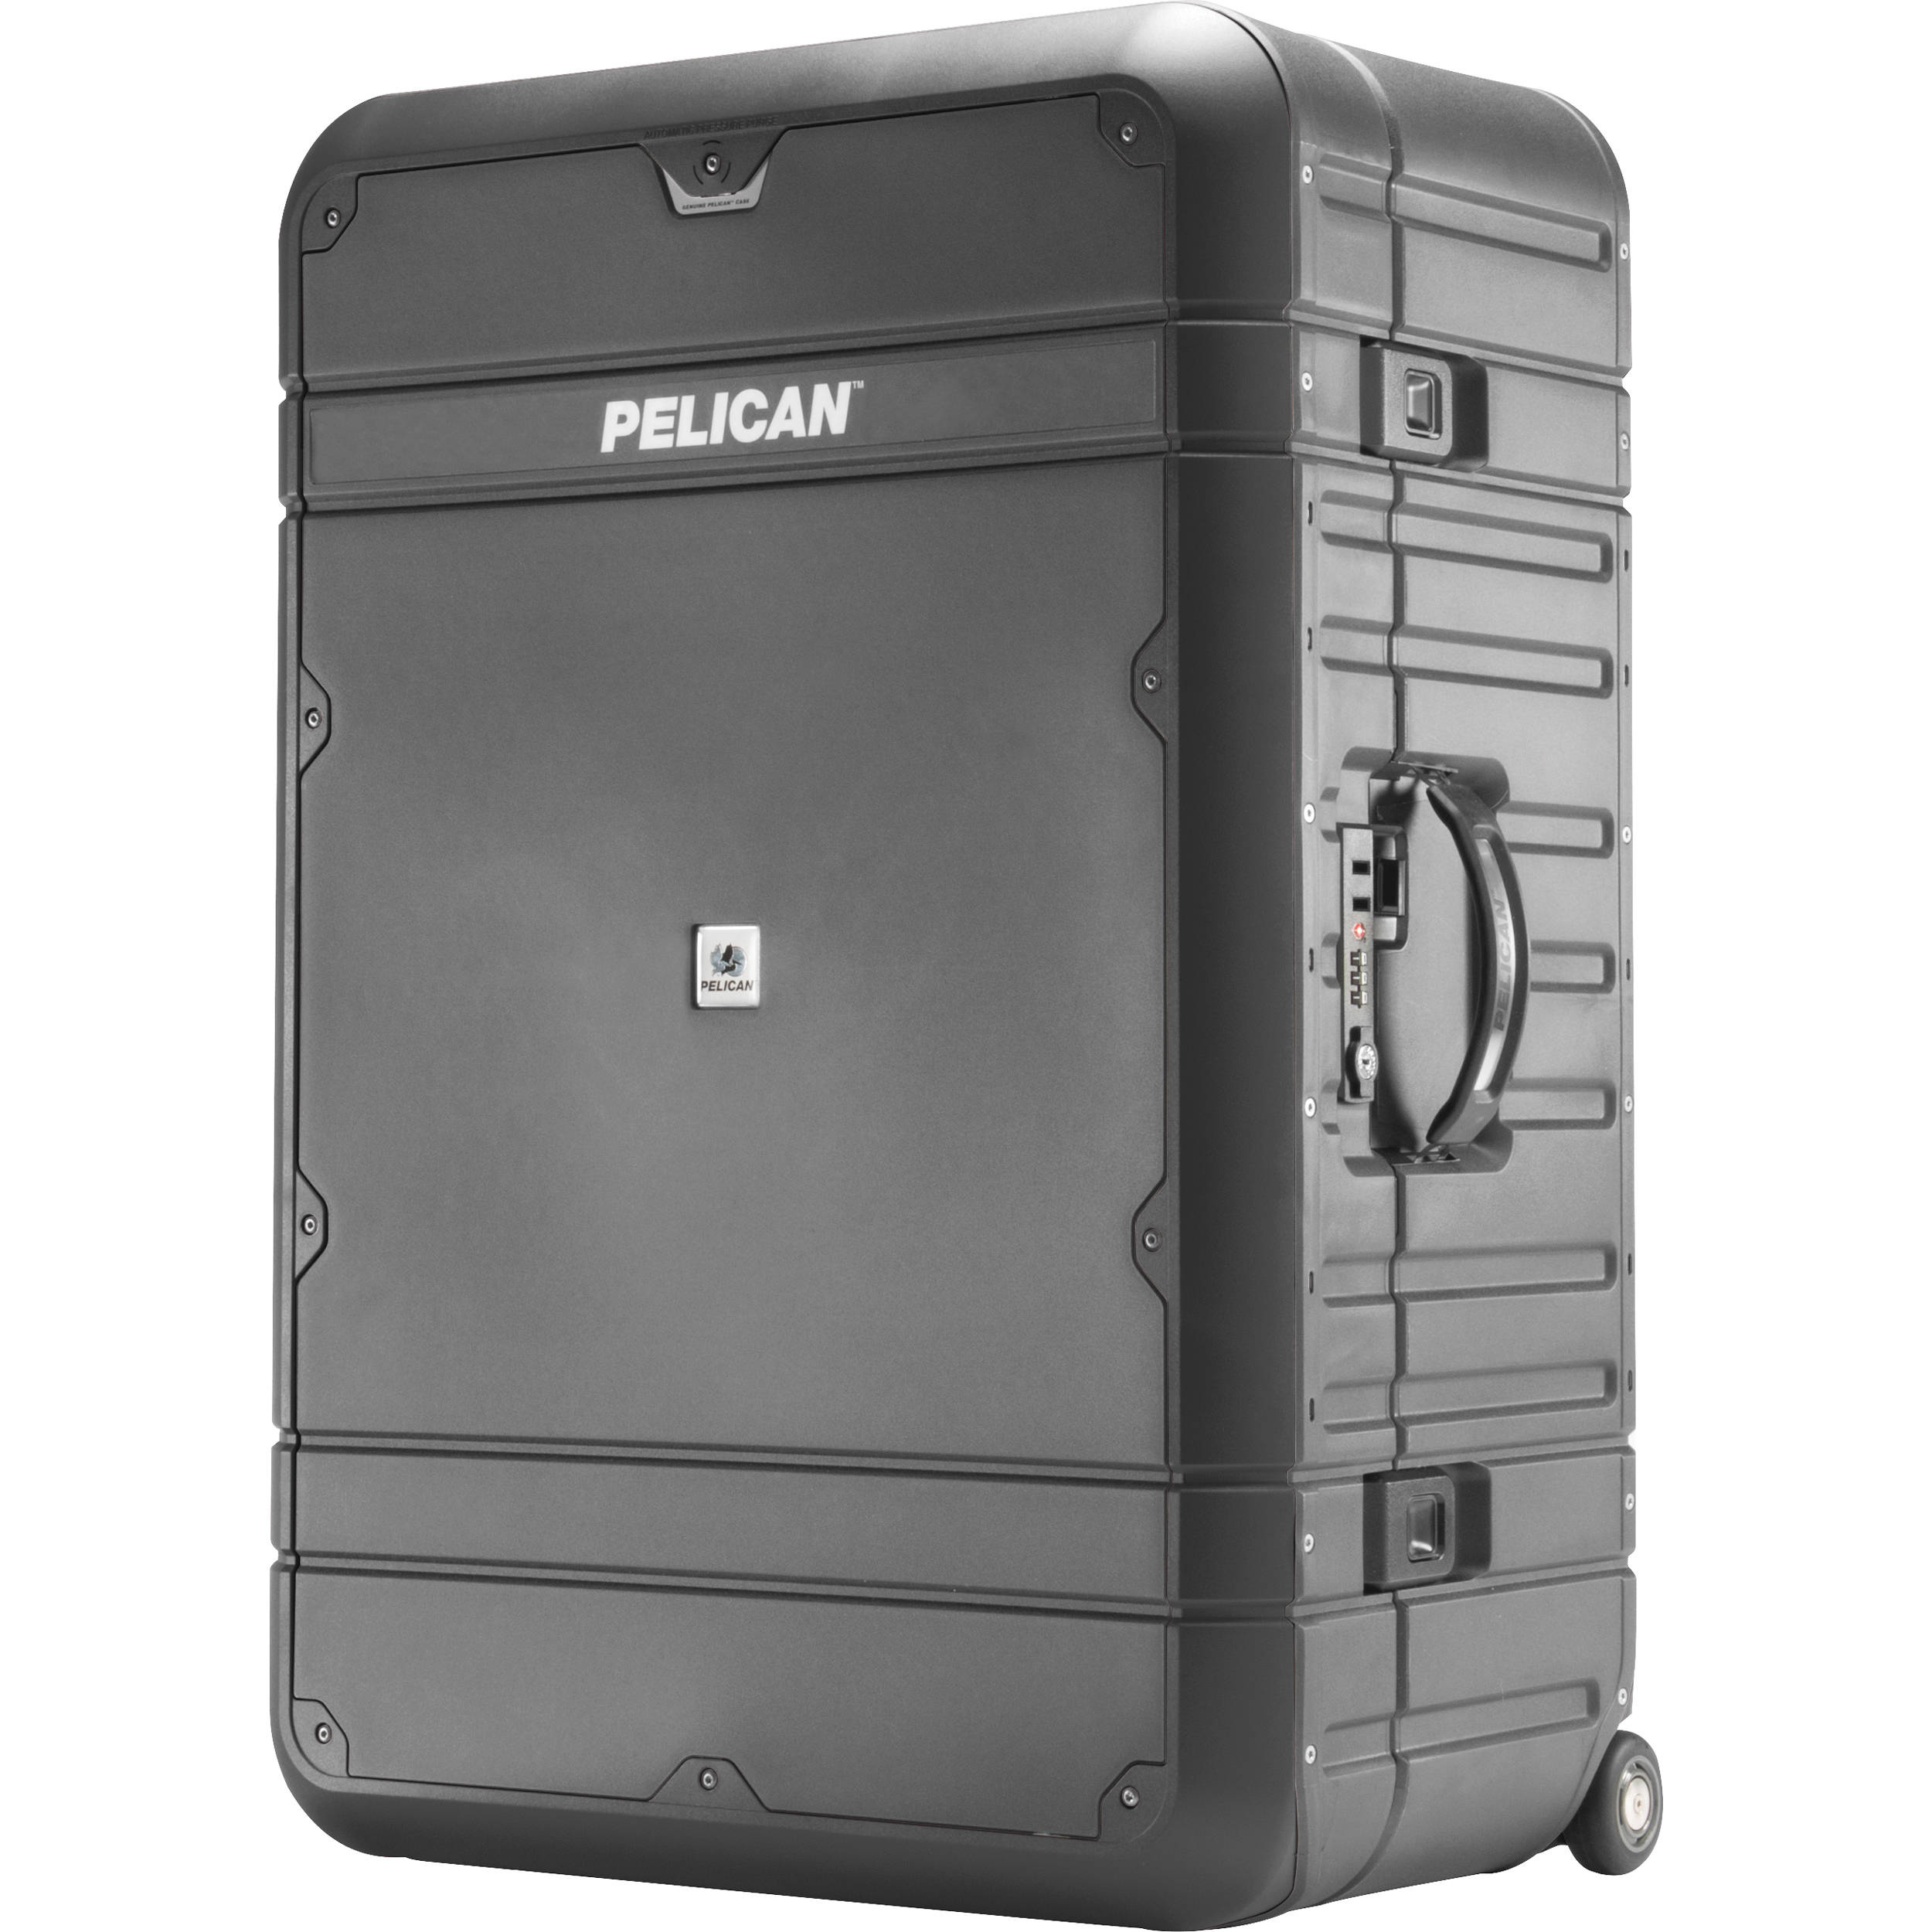 "Pelican 30"" Elite Vacationer Luggage (Grey and Black)"